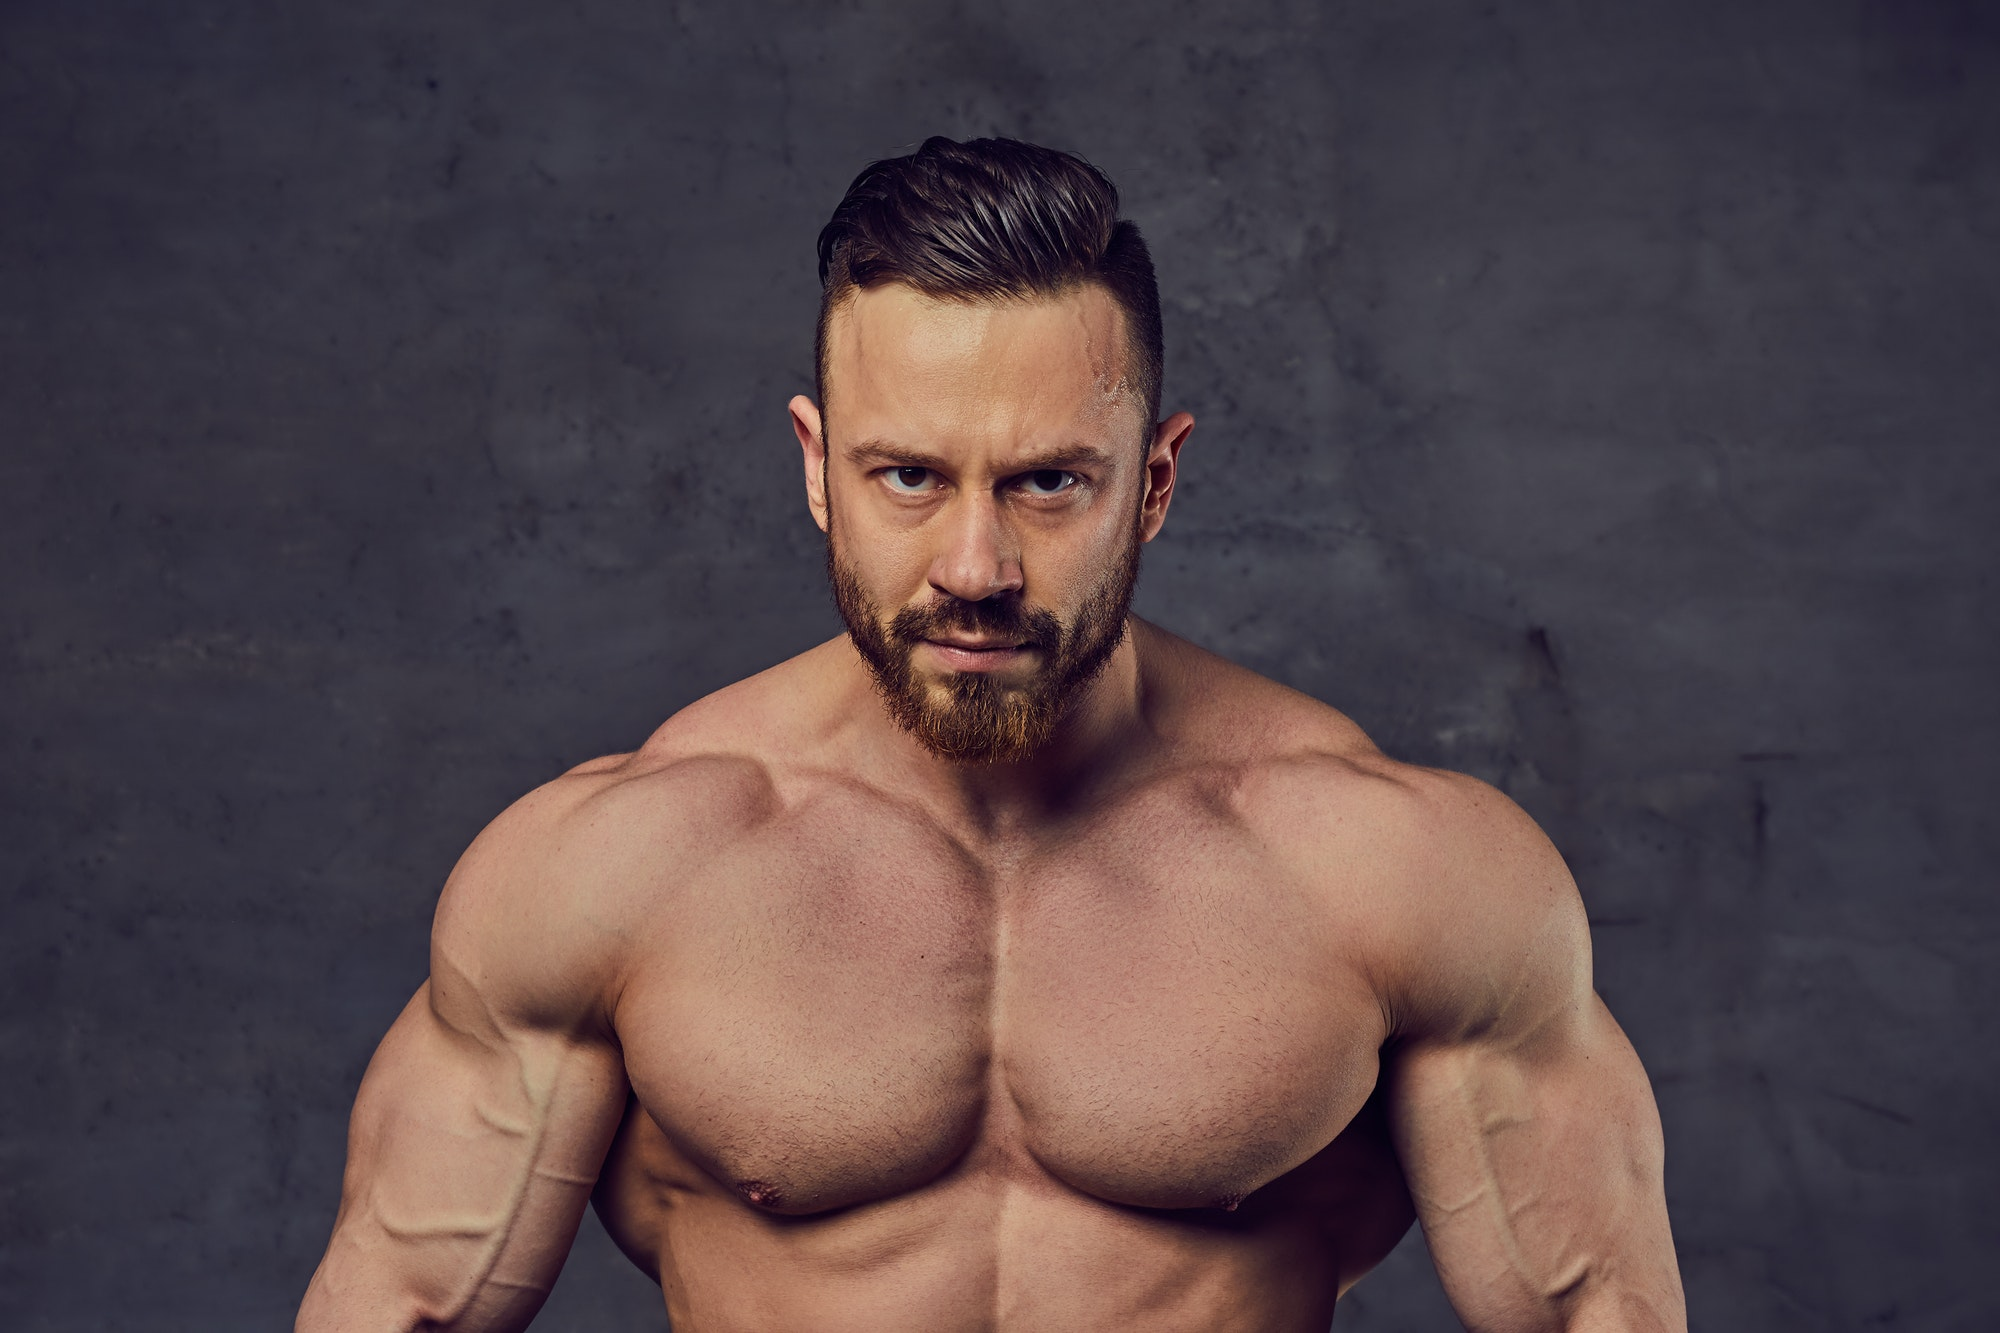 Shirtless bearded bodybuilder over grey background.